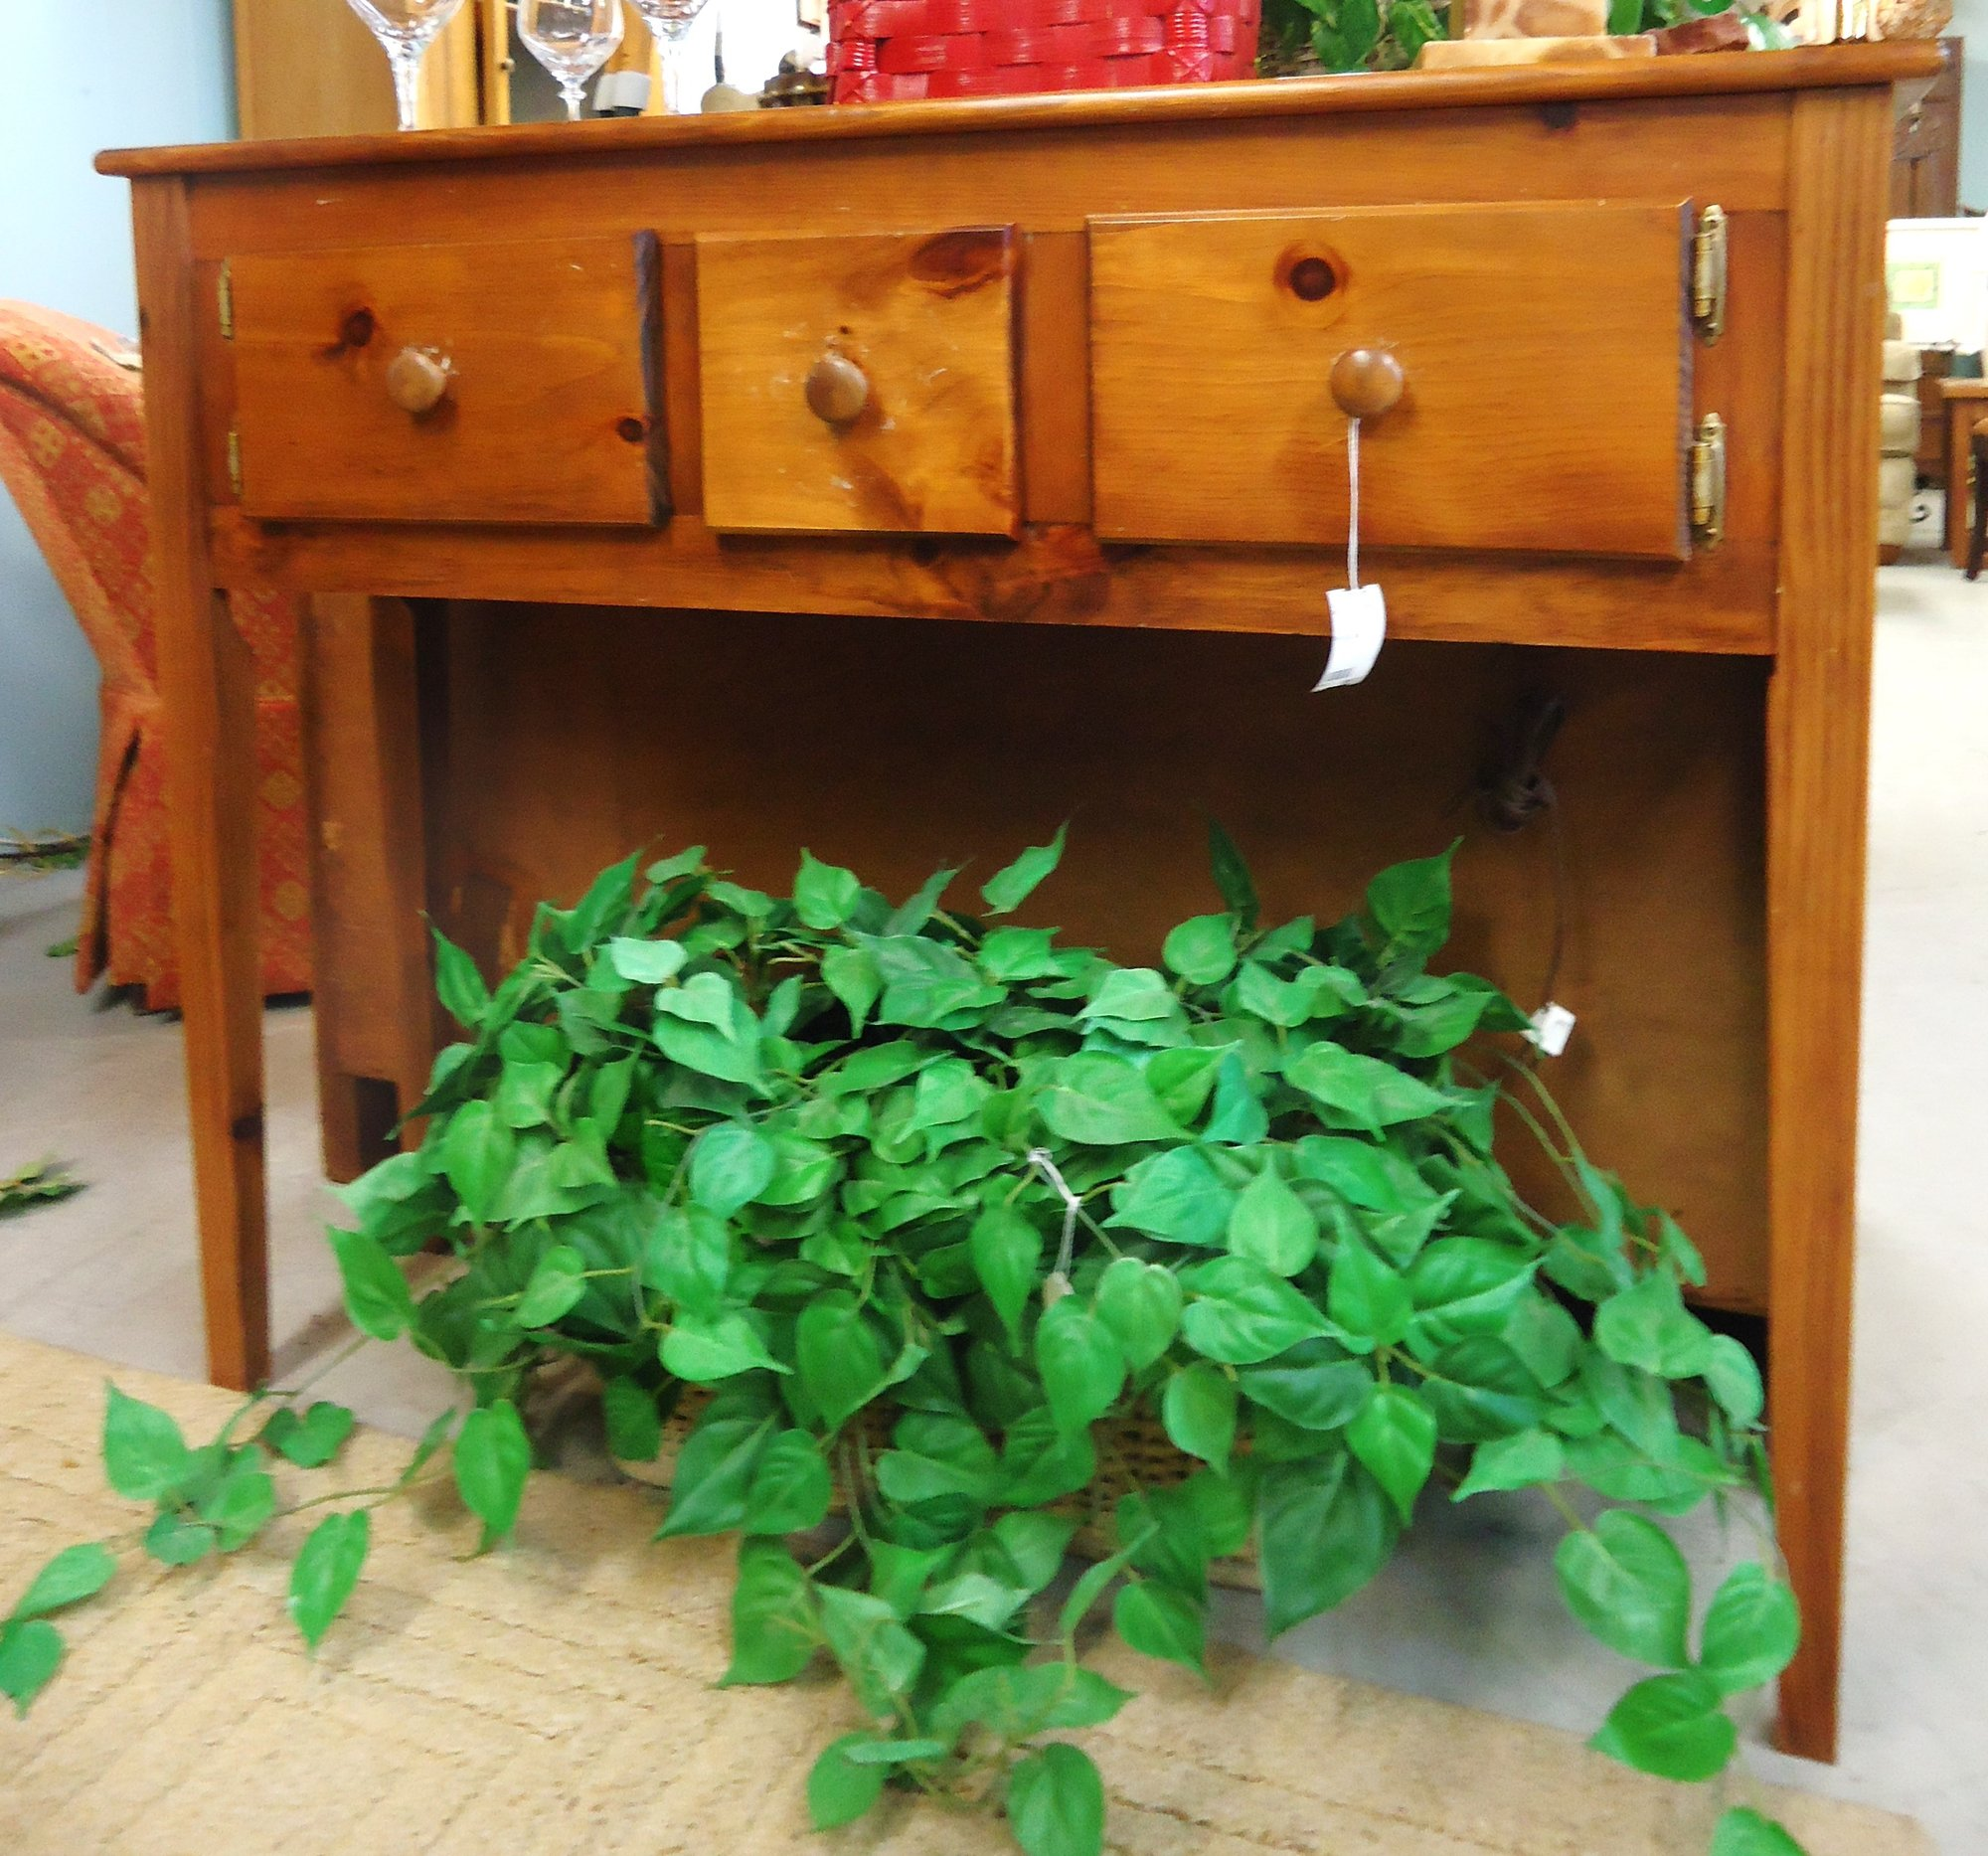 Used Furniture Gallery: 1-14233 Pine Sofa Table Is Sold